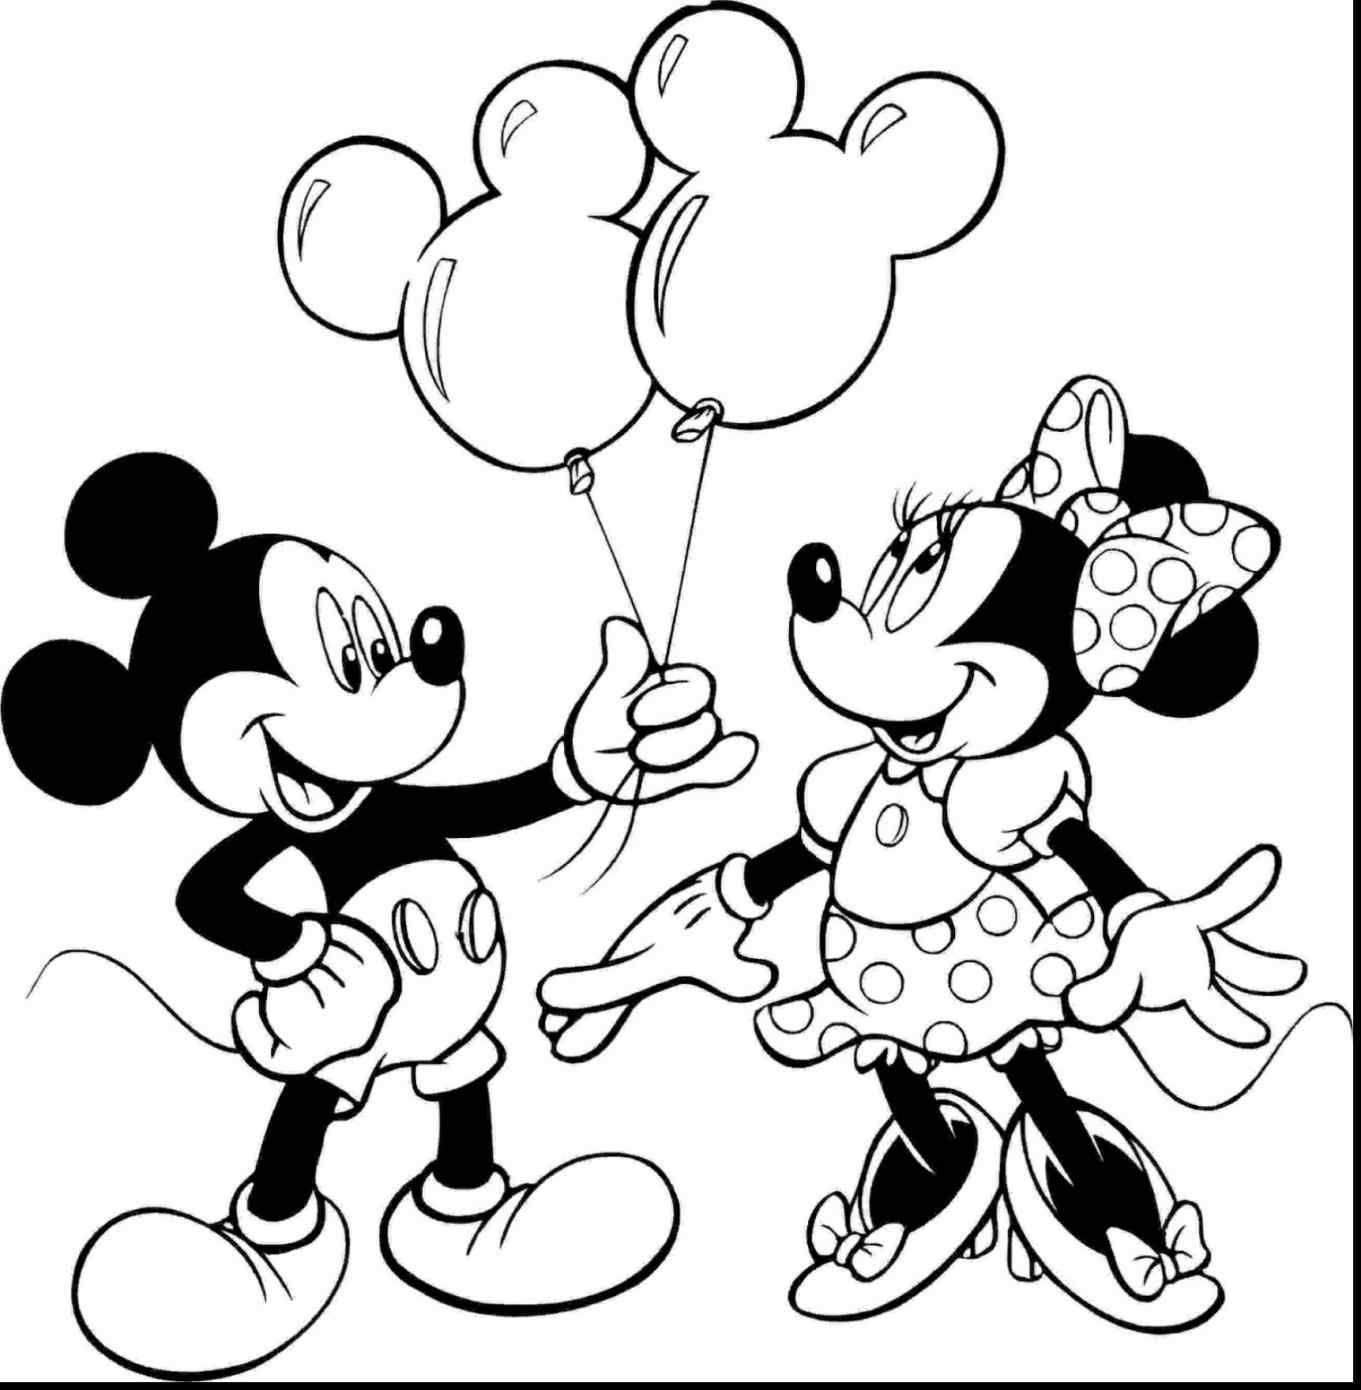 1361x1390 Mickey And Minnie Mouse Birthday Coloring Pages Online Coloring